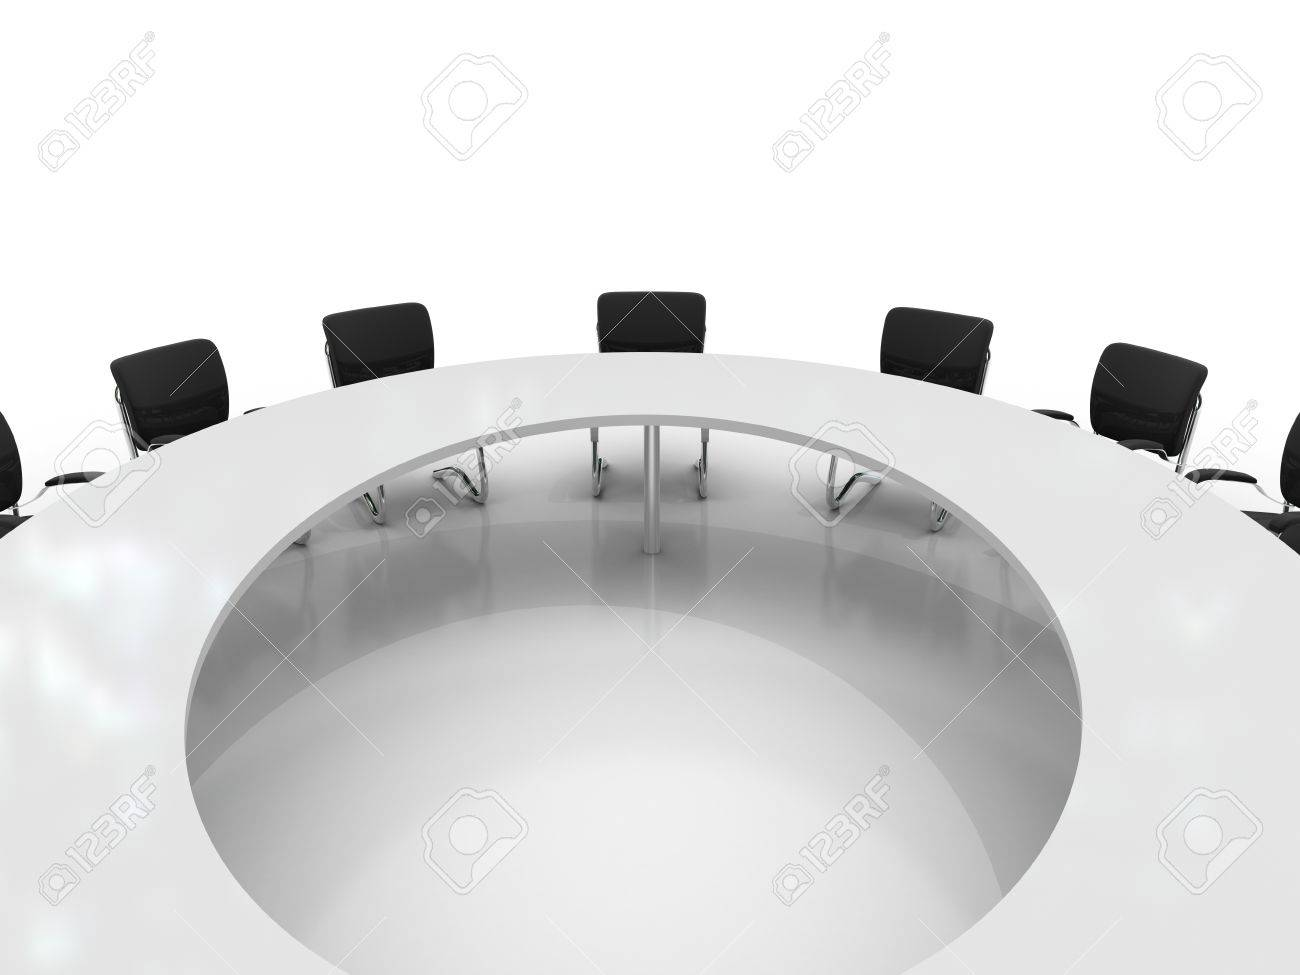 conference table and chairs isolated on white background Stock Photo - 8548179